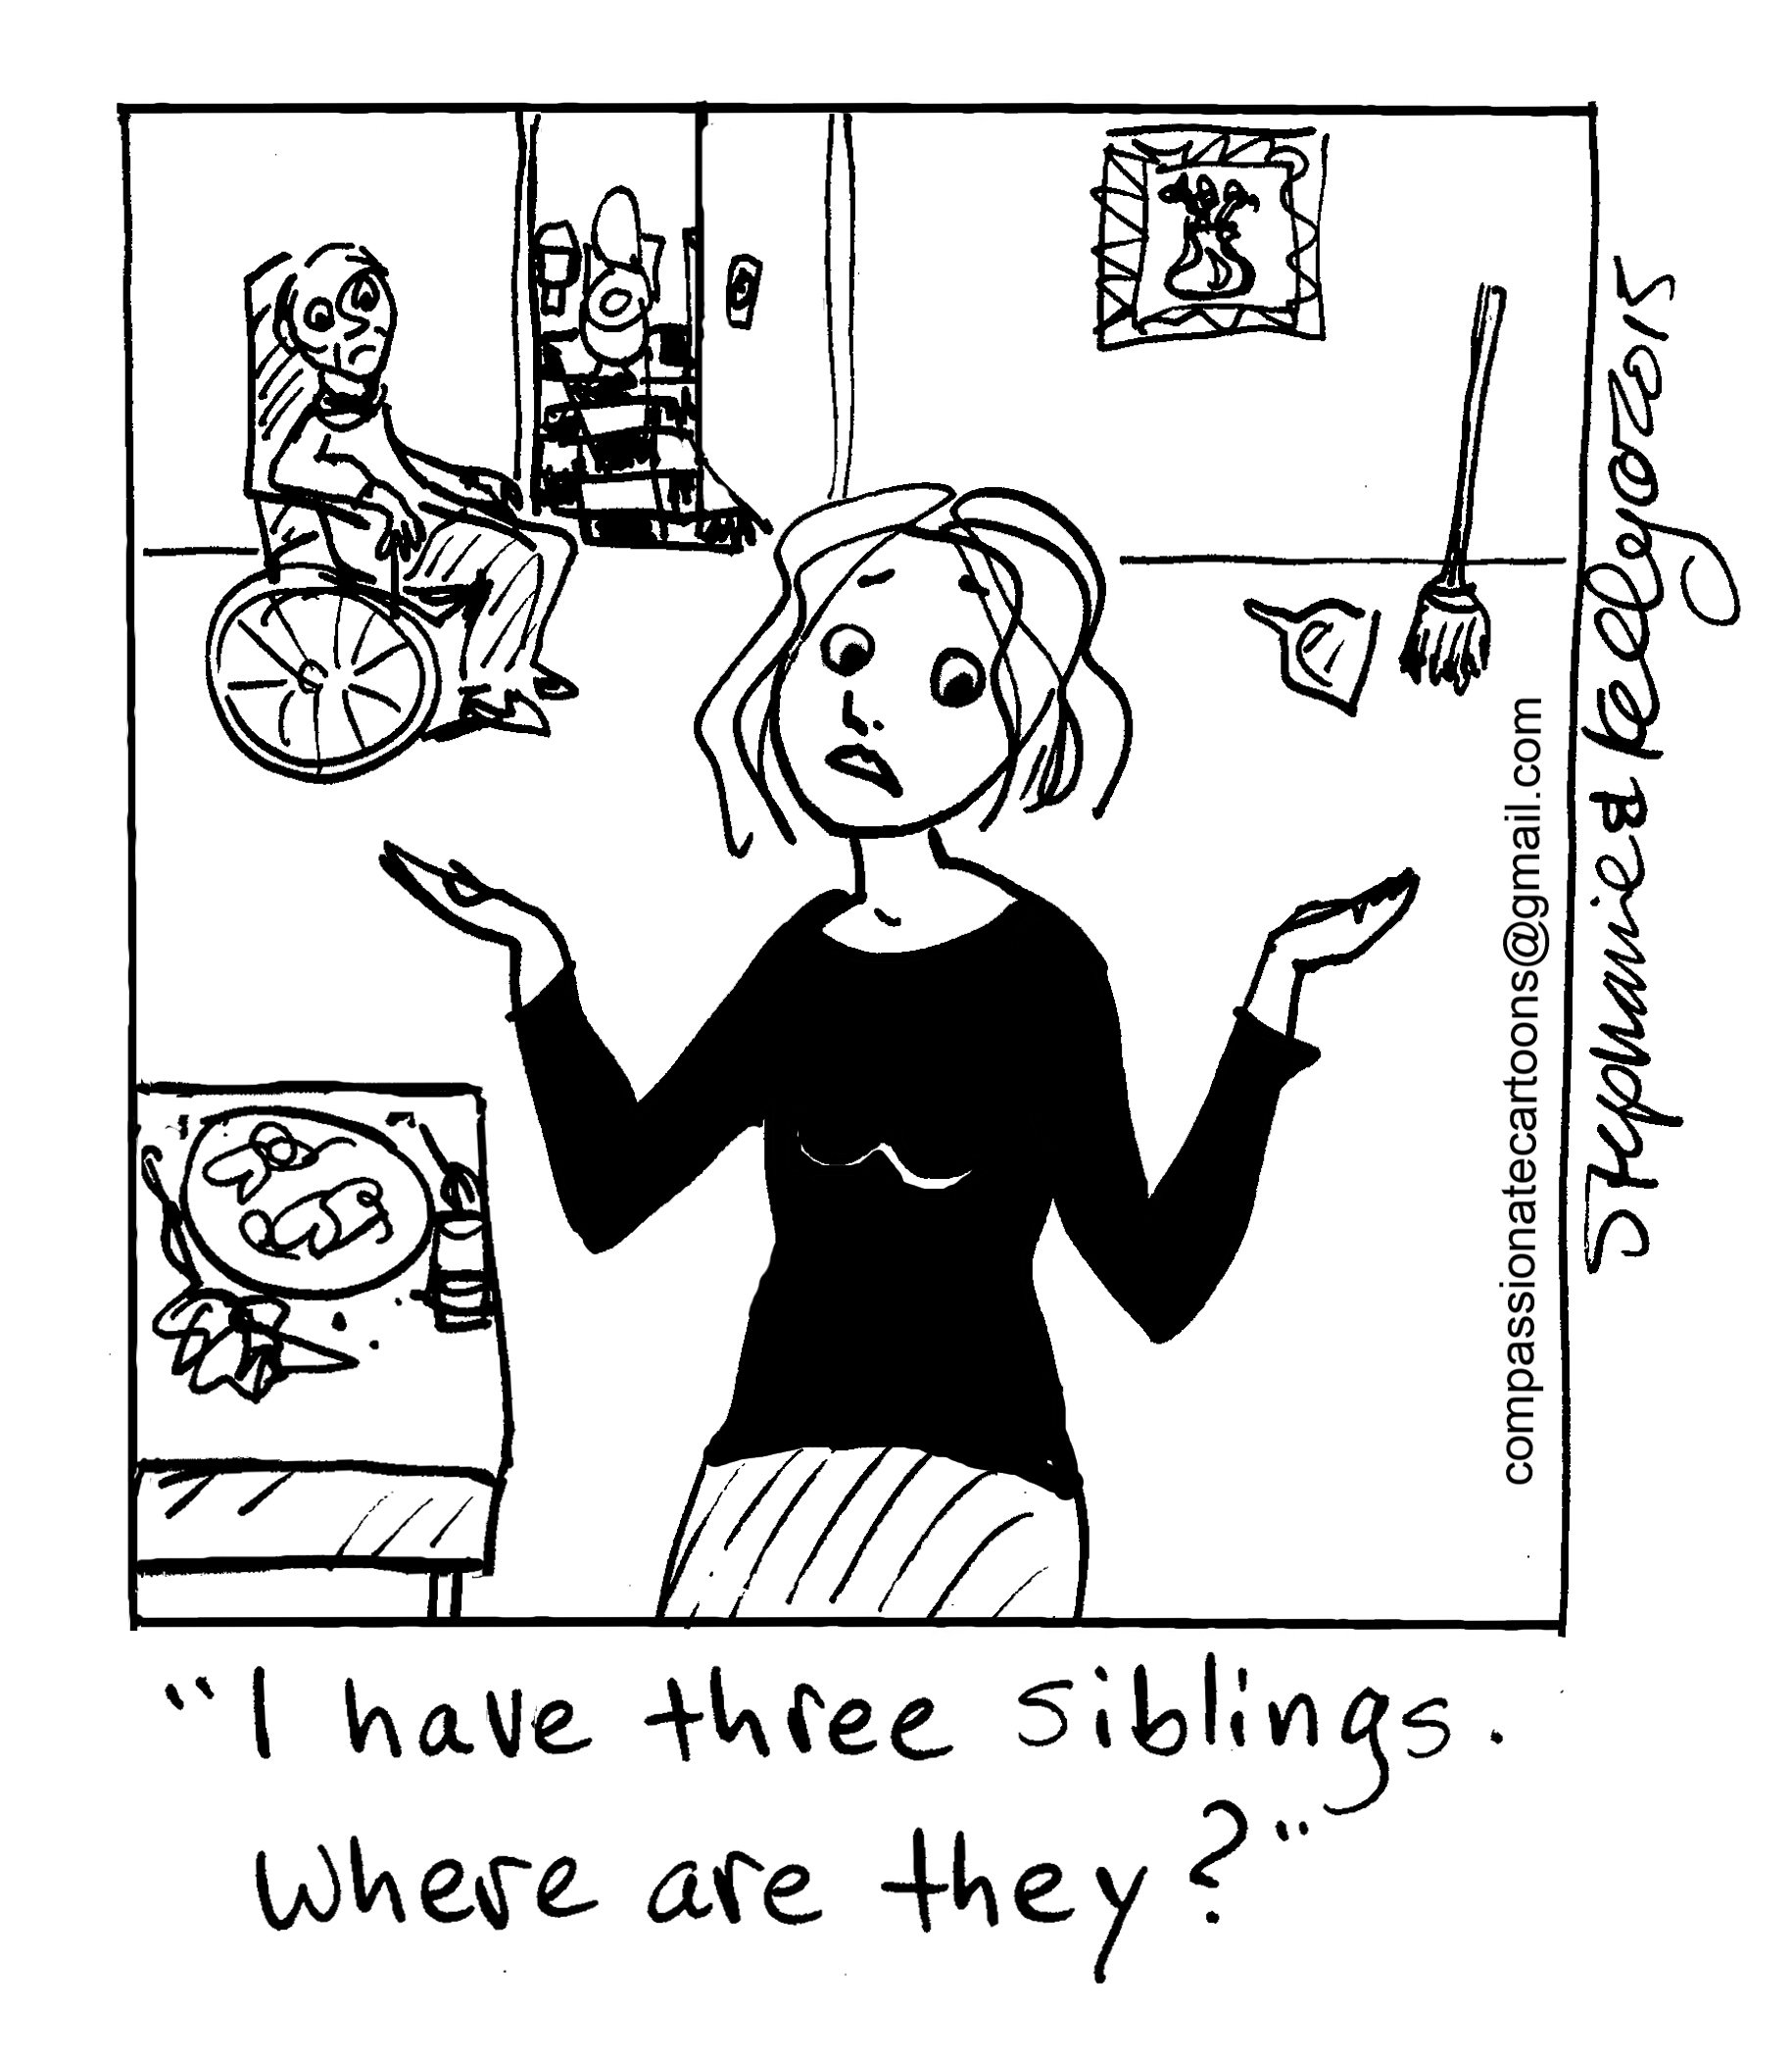 the truth about siblings